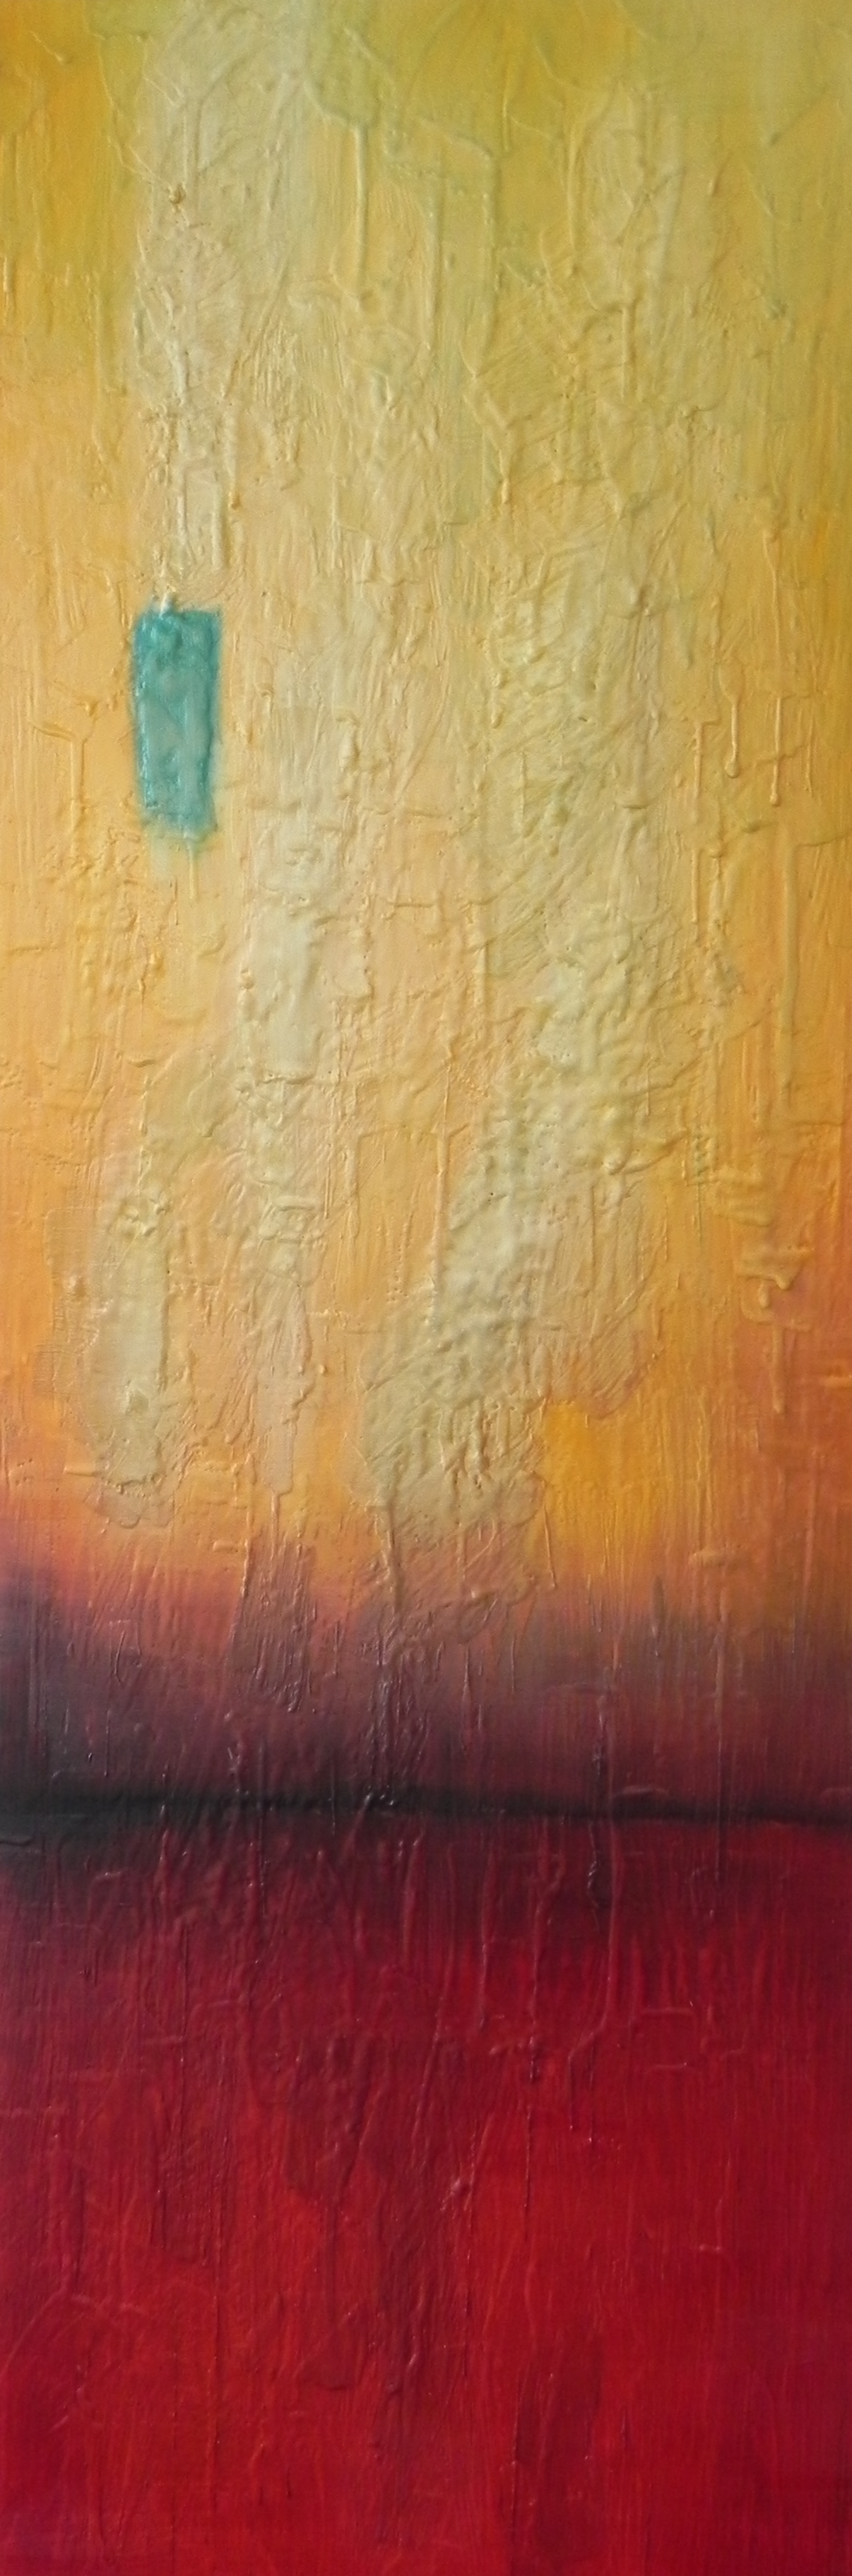 "ALIGHTING, 2014. 36"" x 12"". Cradled Wood Panel. Oil and Wax. Copyright © Karen Santos 2014. SOLD"